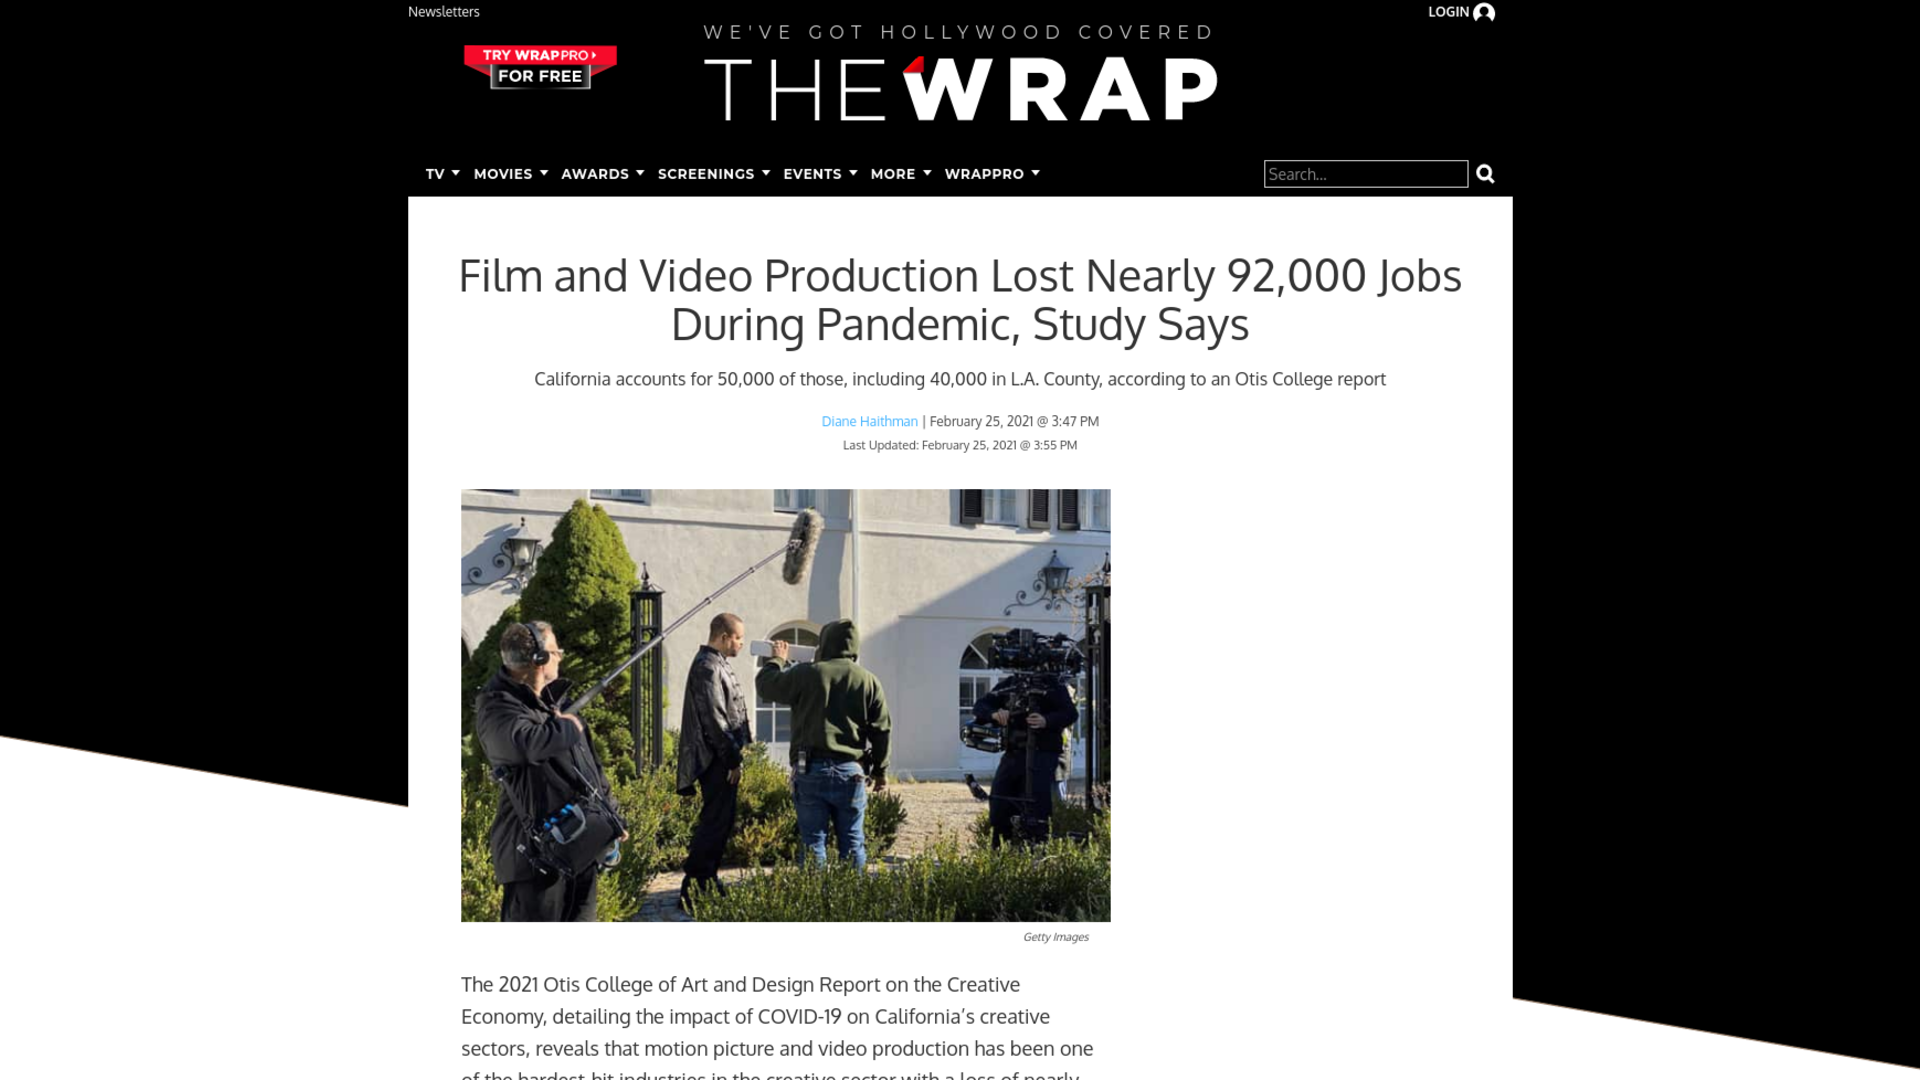 Fairness Rocks News Film and Video Production Lost Nearly 92,000 Jobs During Pandemic, Study Says